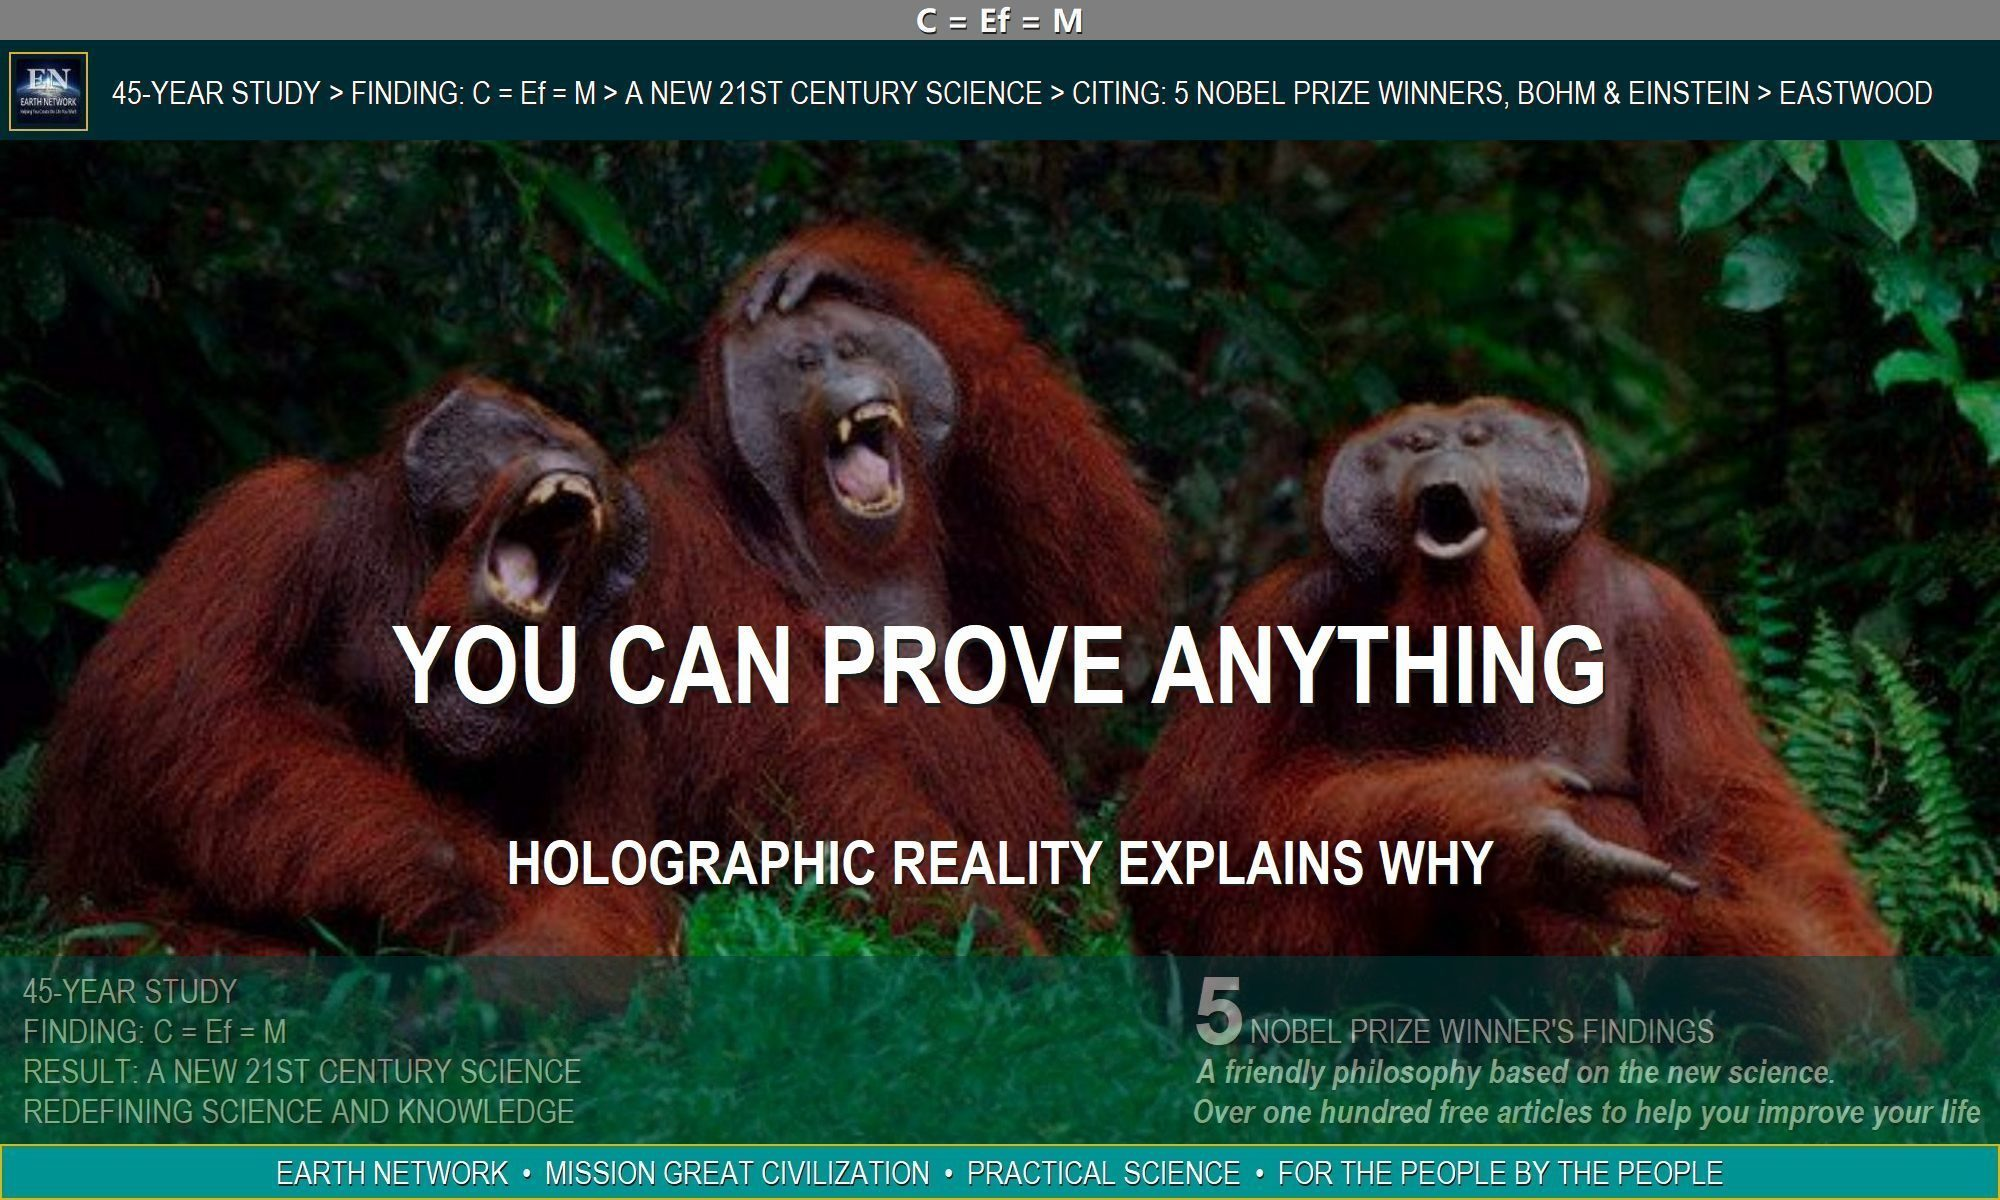 apes laughing because you can prove anything or any fact and reality